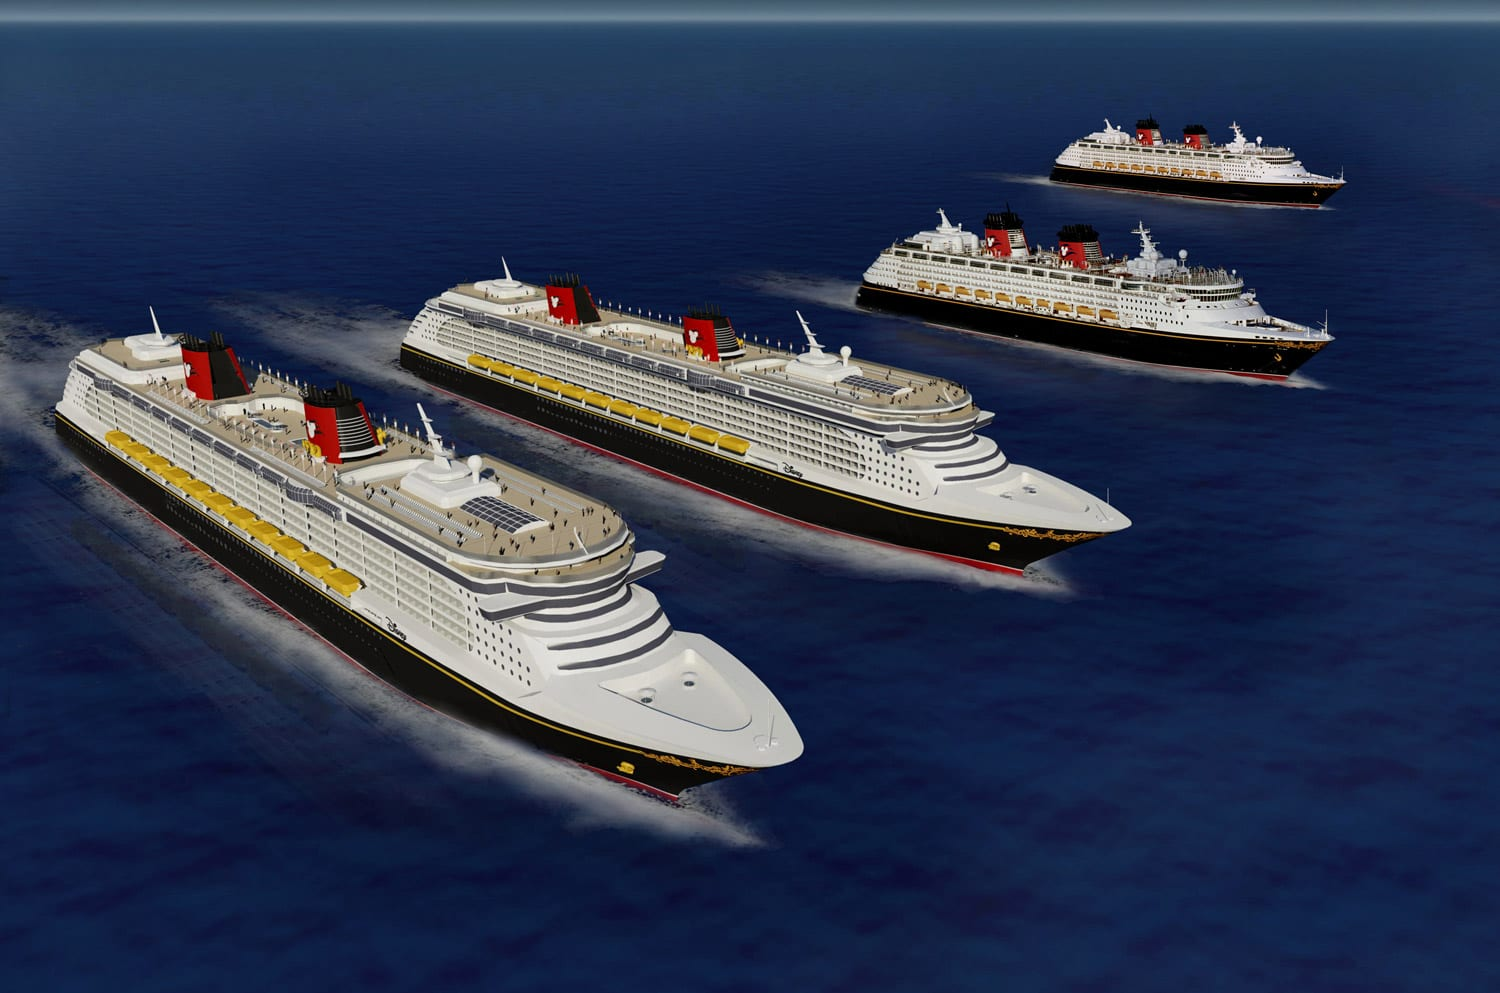 New Disney Cruise Line Infant Age Limit Policy coming for 2015 bookings 4